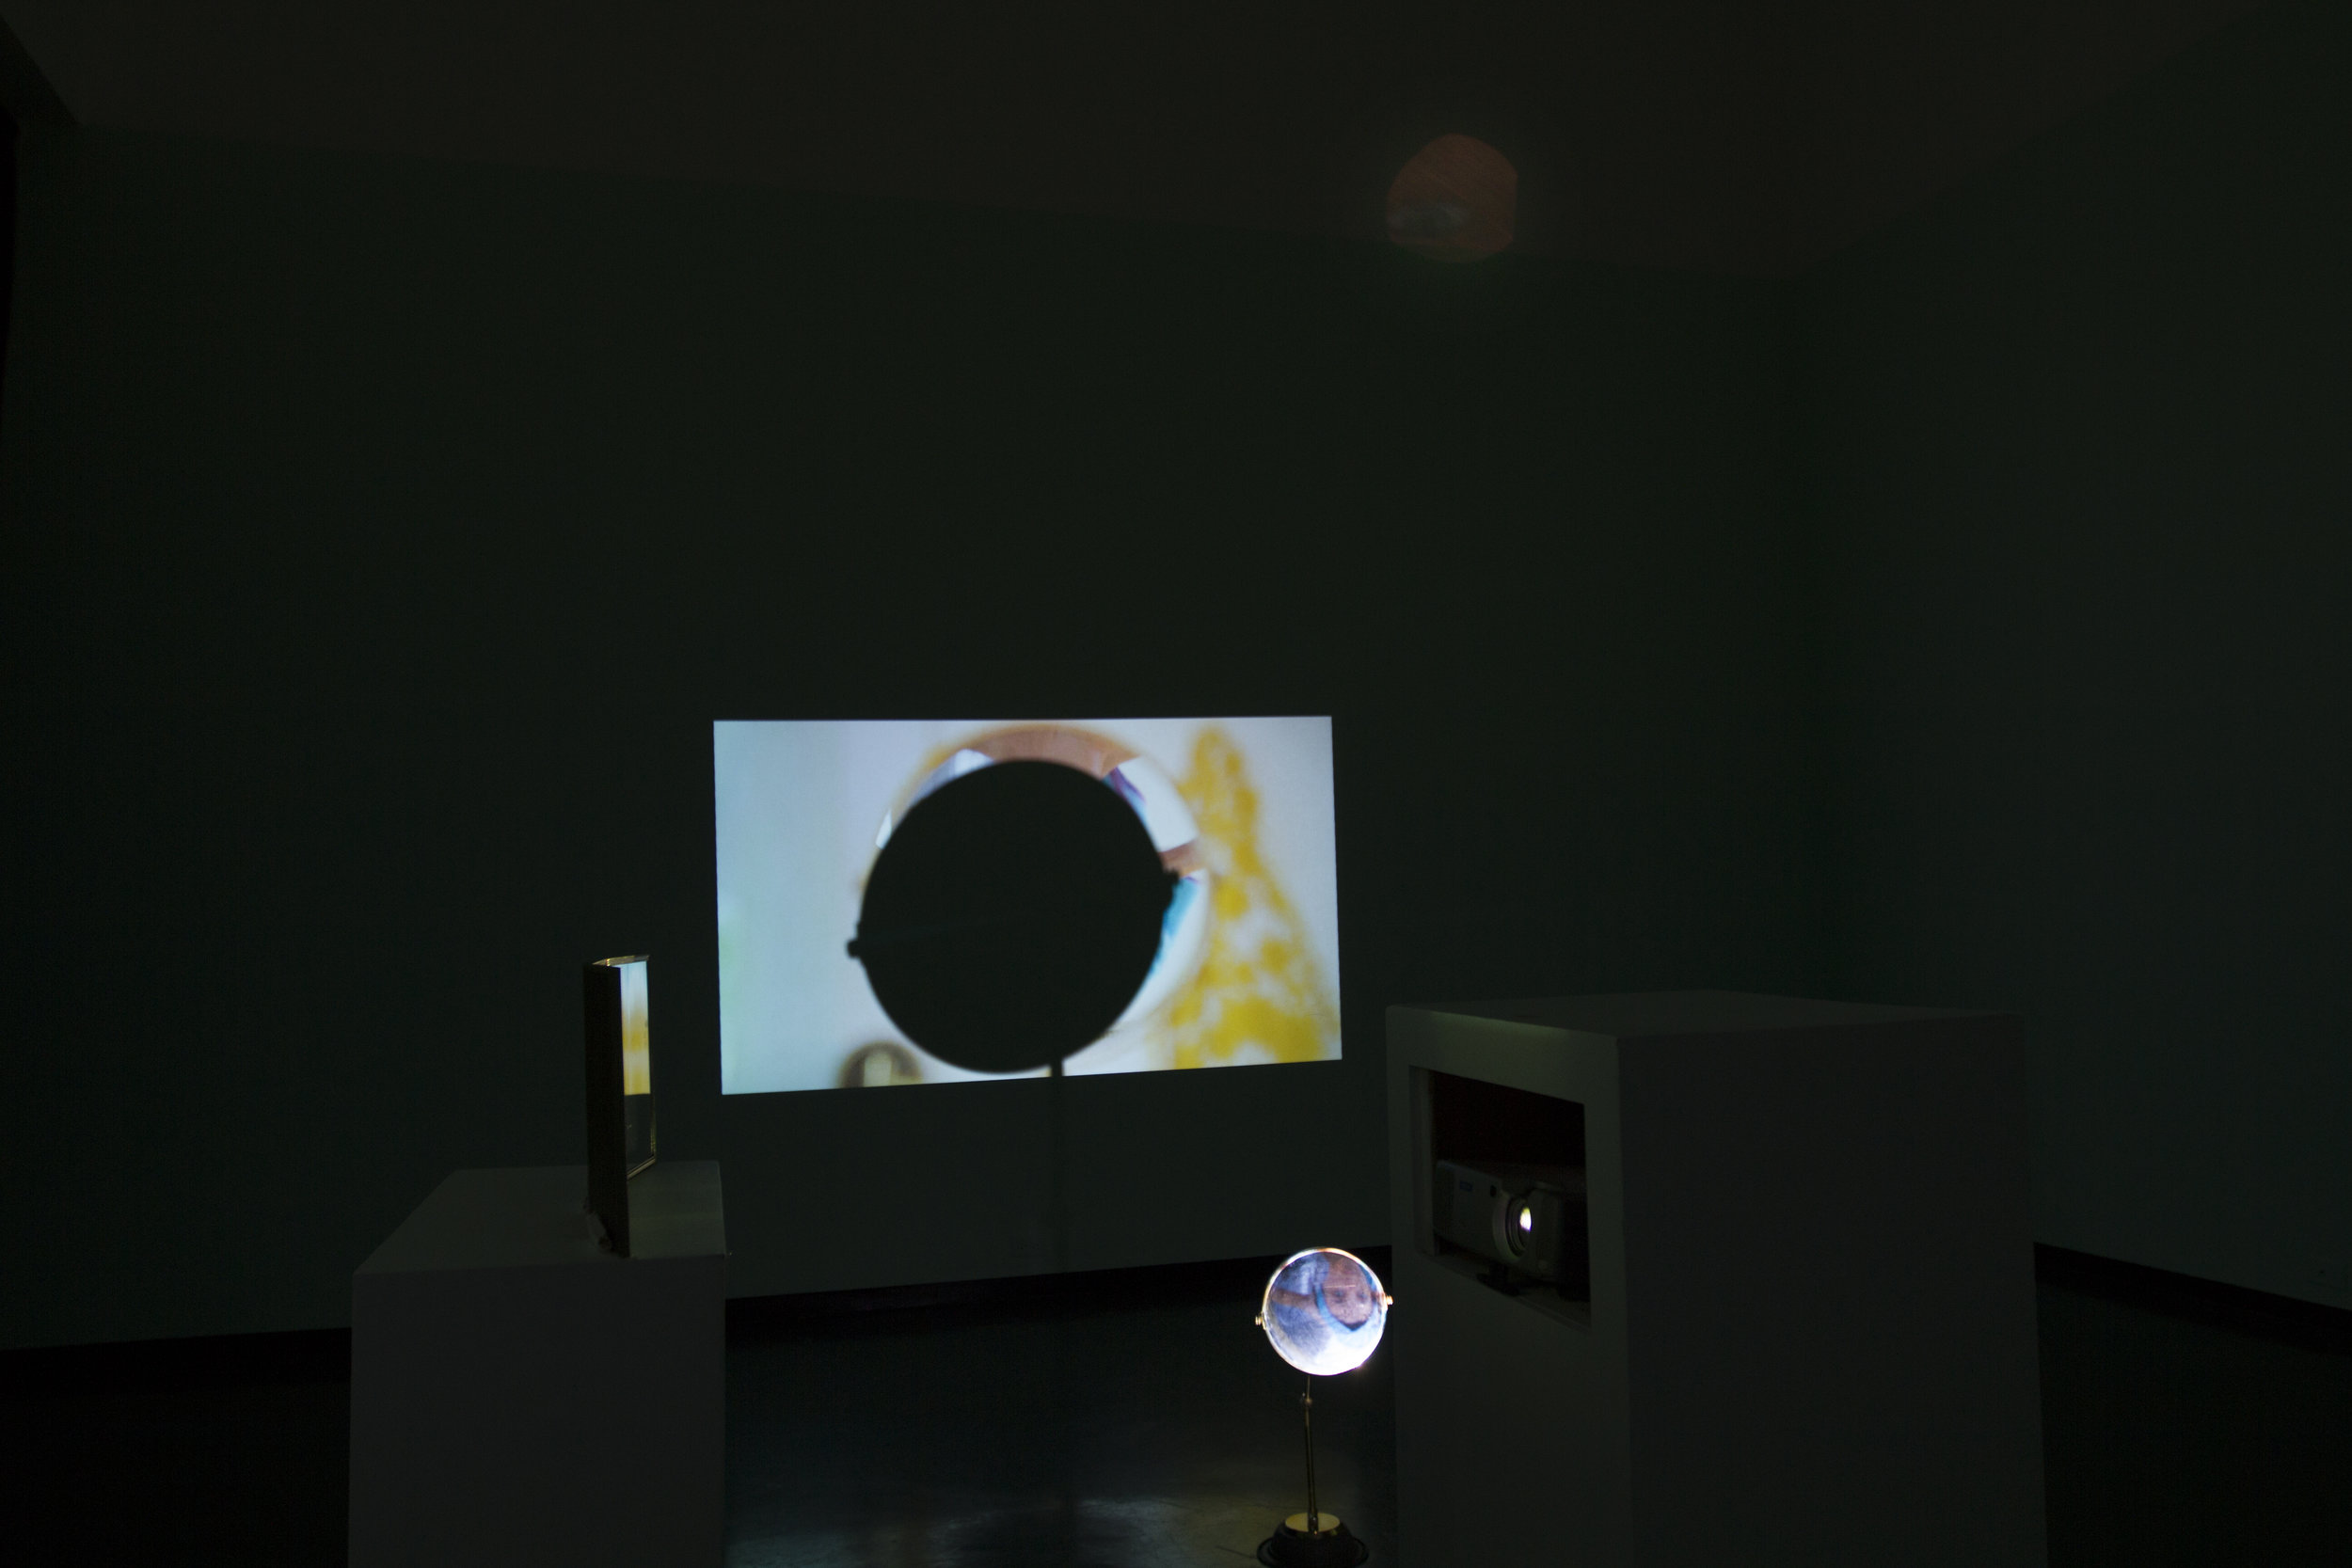 Documentation of Ends Meet, 2-Channel Video Installation with Projection and Mirrors